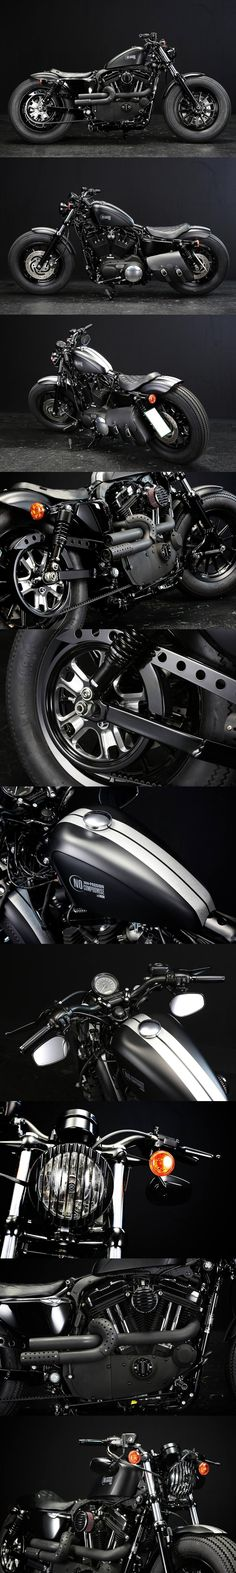 Harley-Davidson Sportster 48 Custom by Rough Crafts